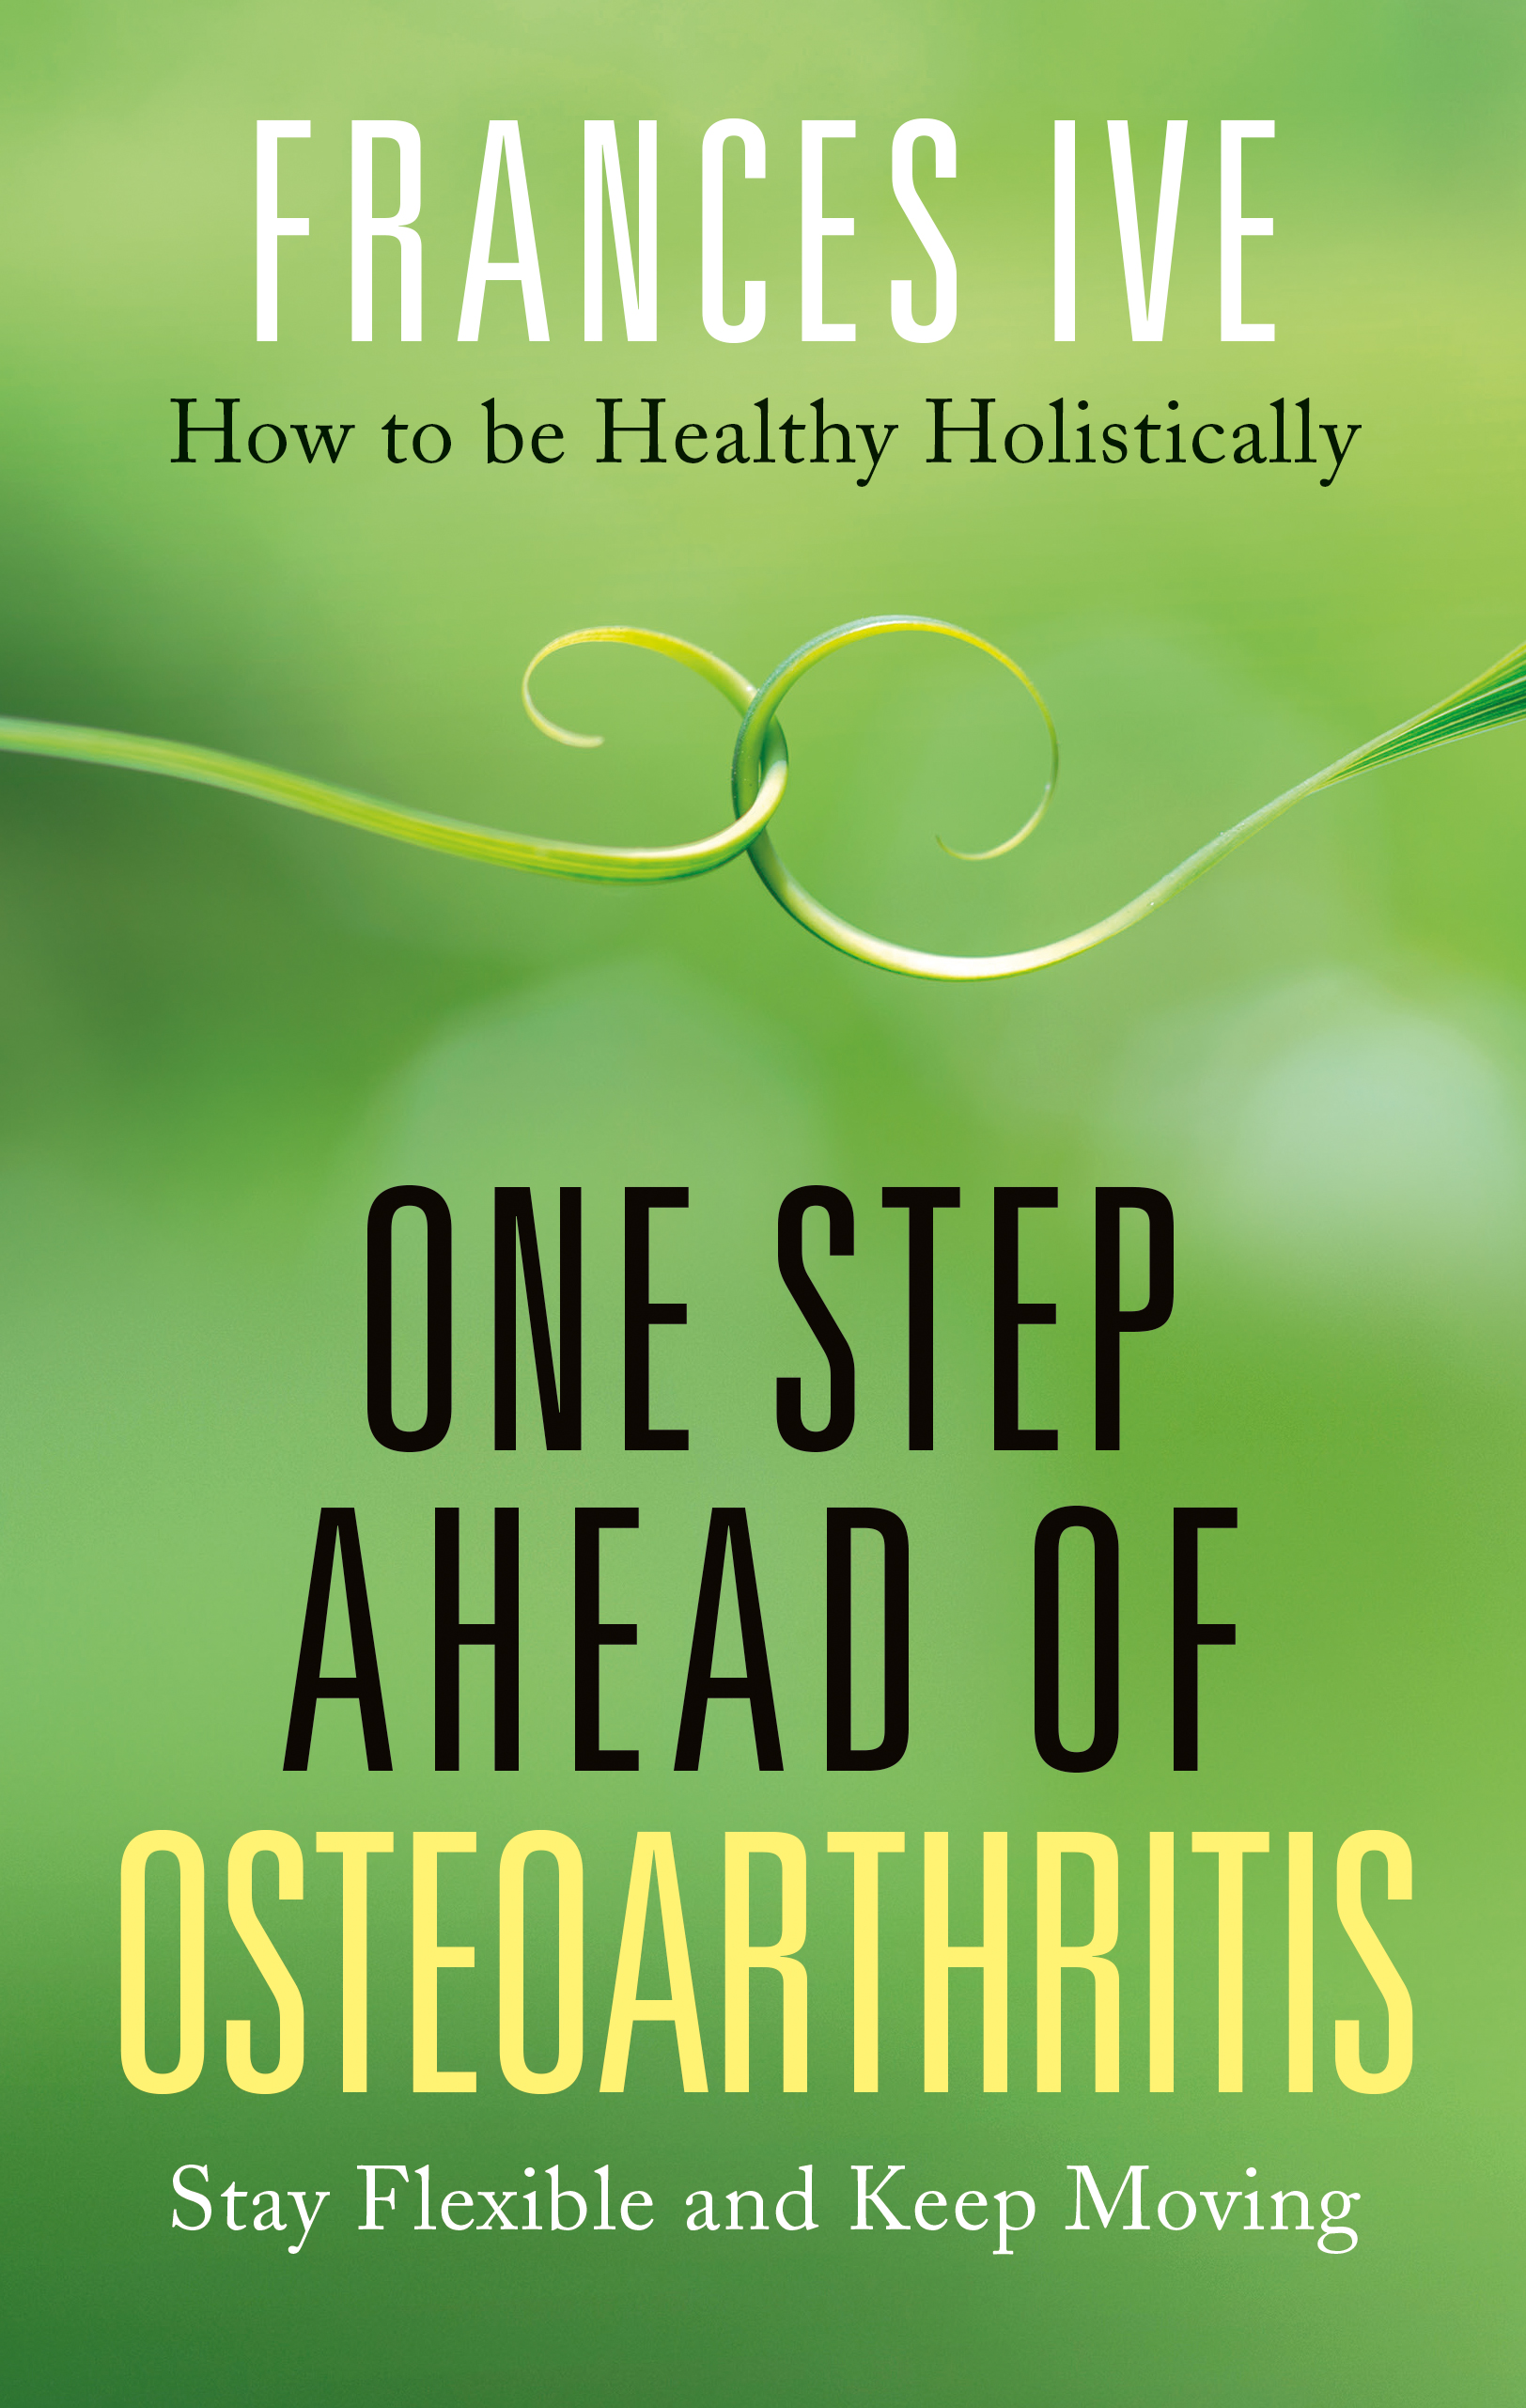 One Step Ahead of Osteoarthritis book cover